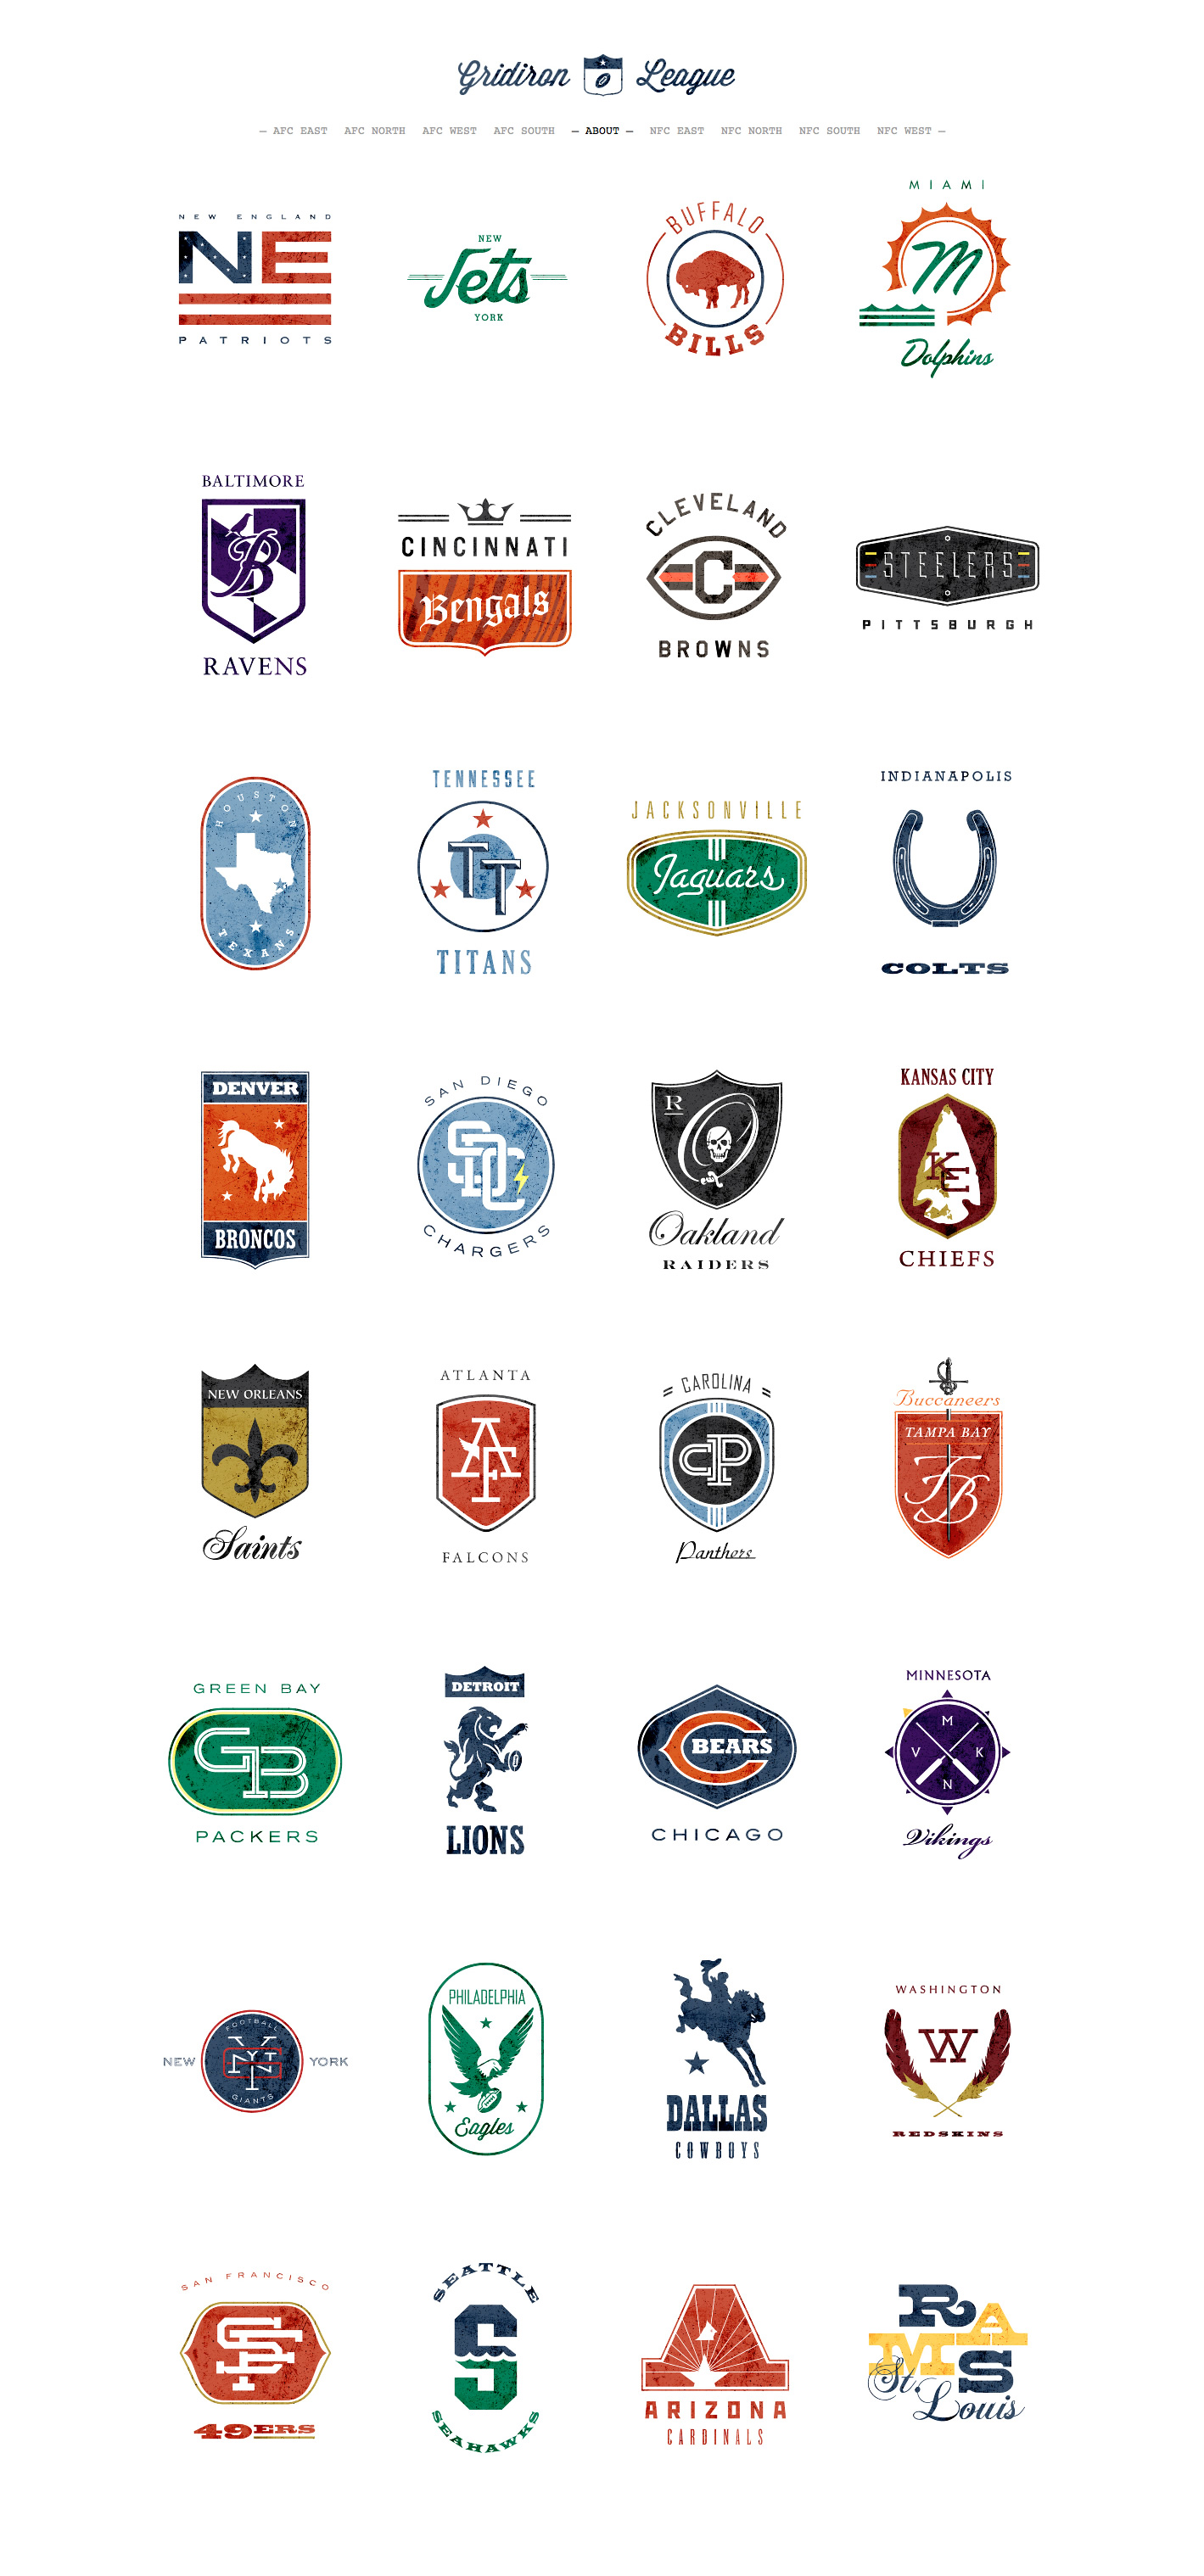 NFL Team Logos and Names